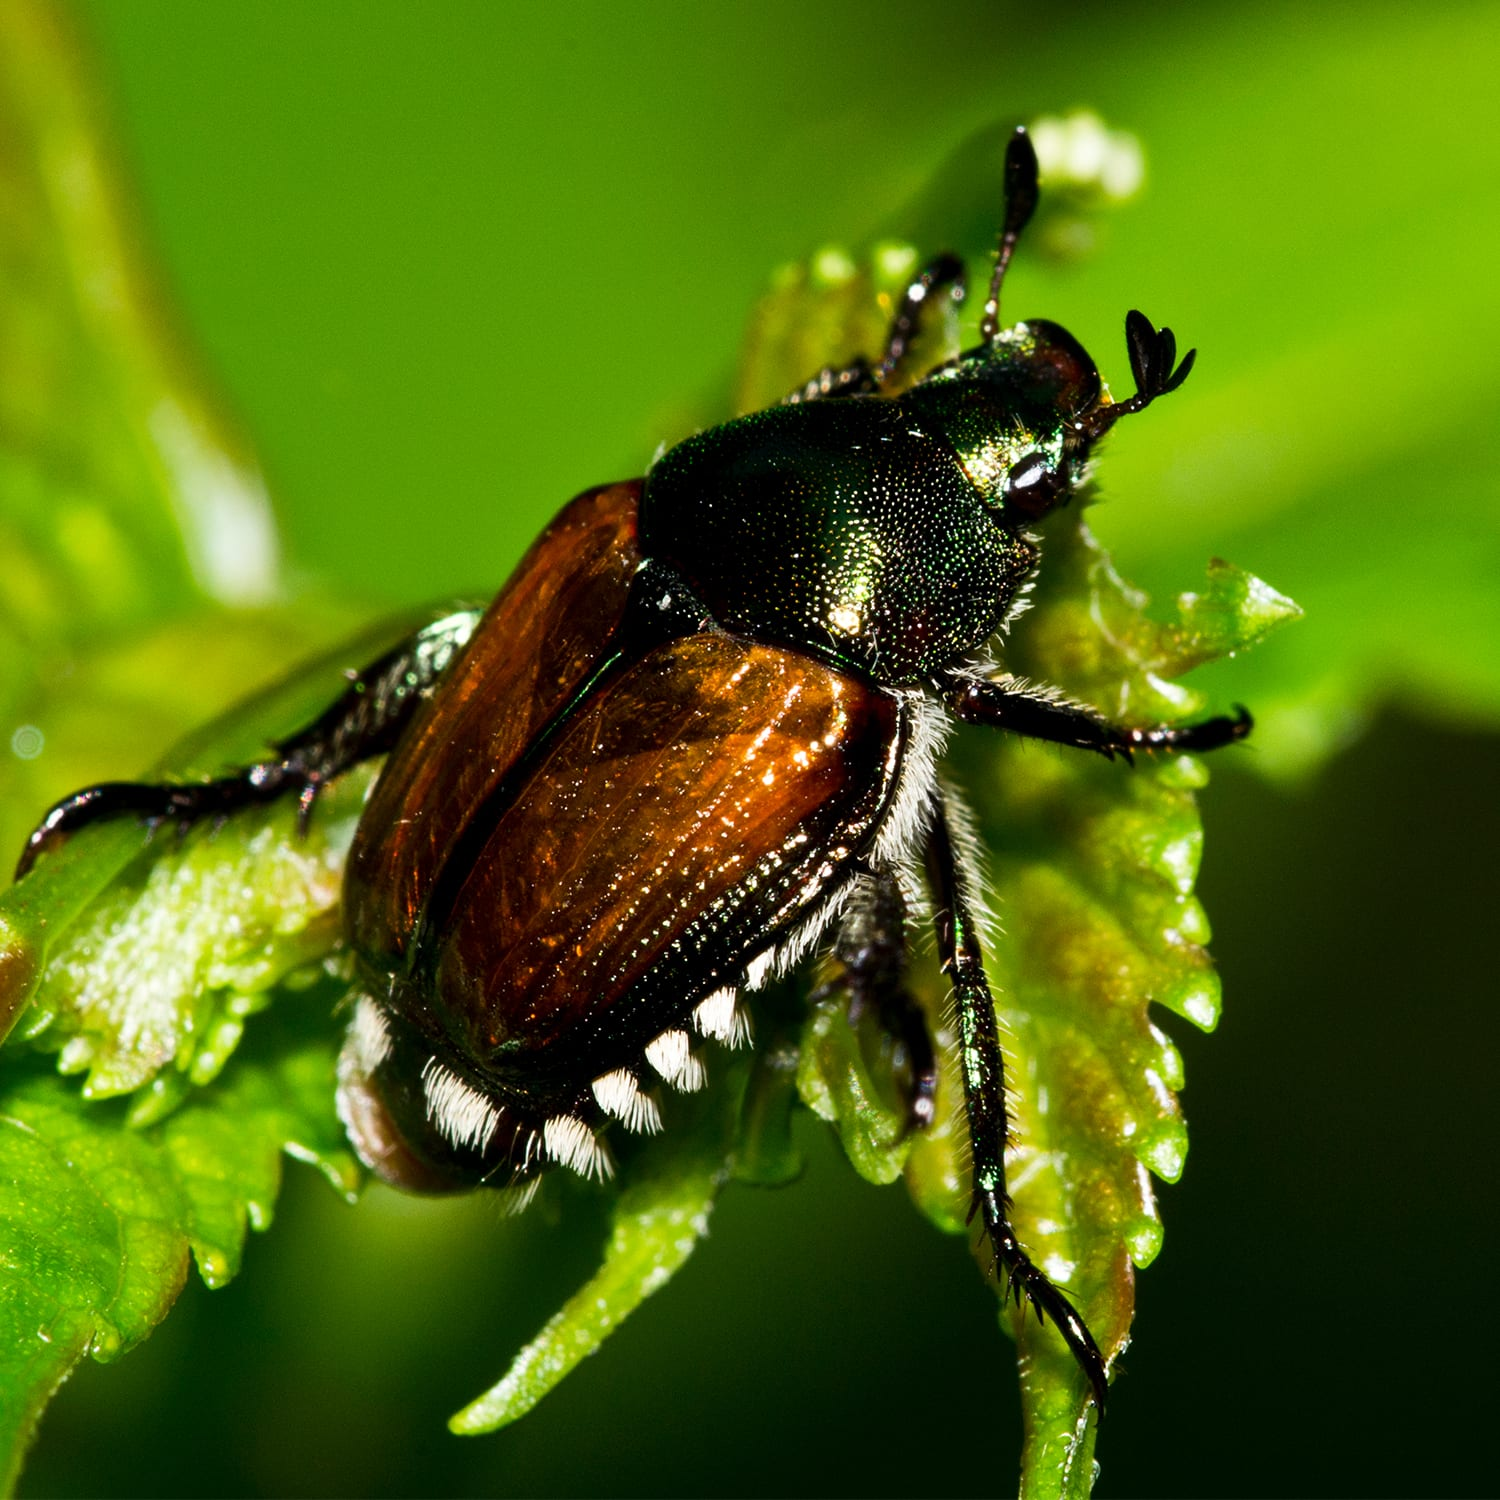 The Japanese Beetle